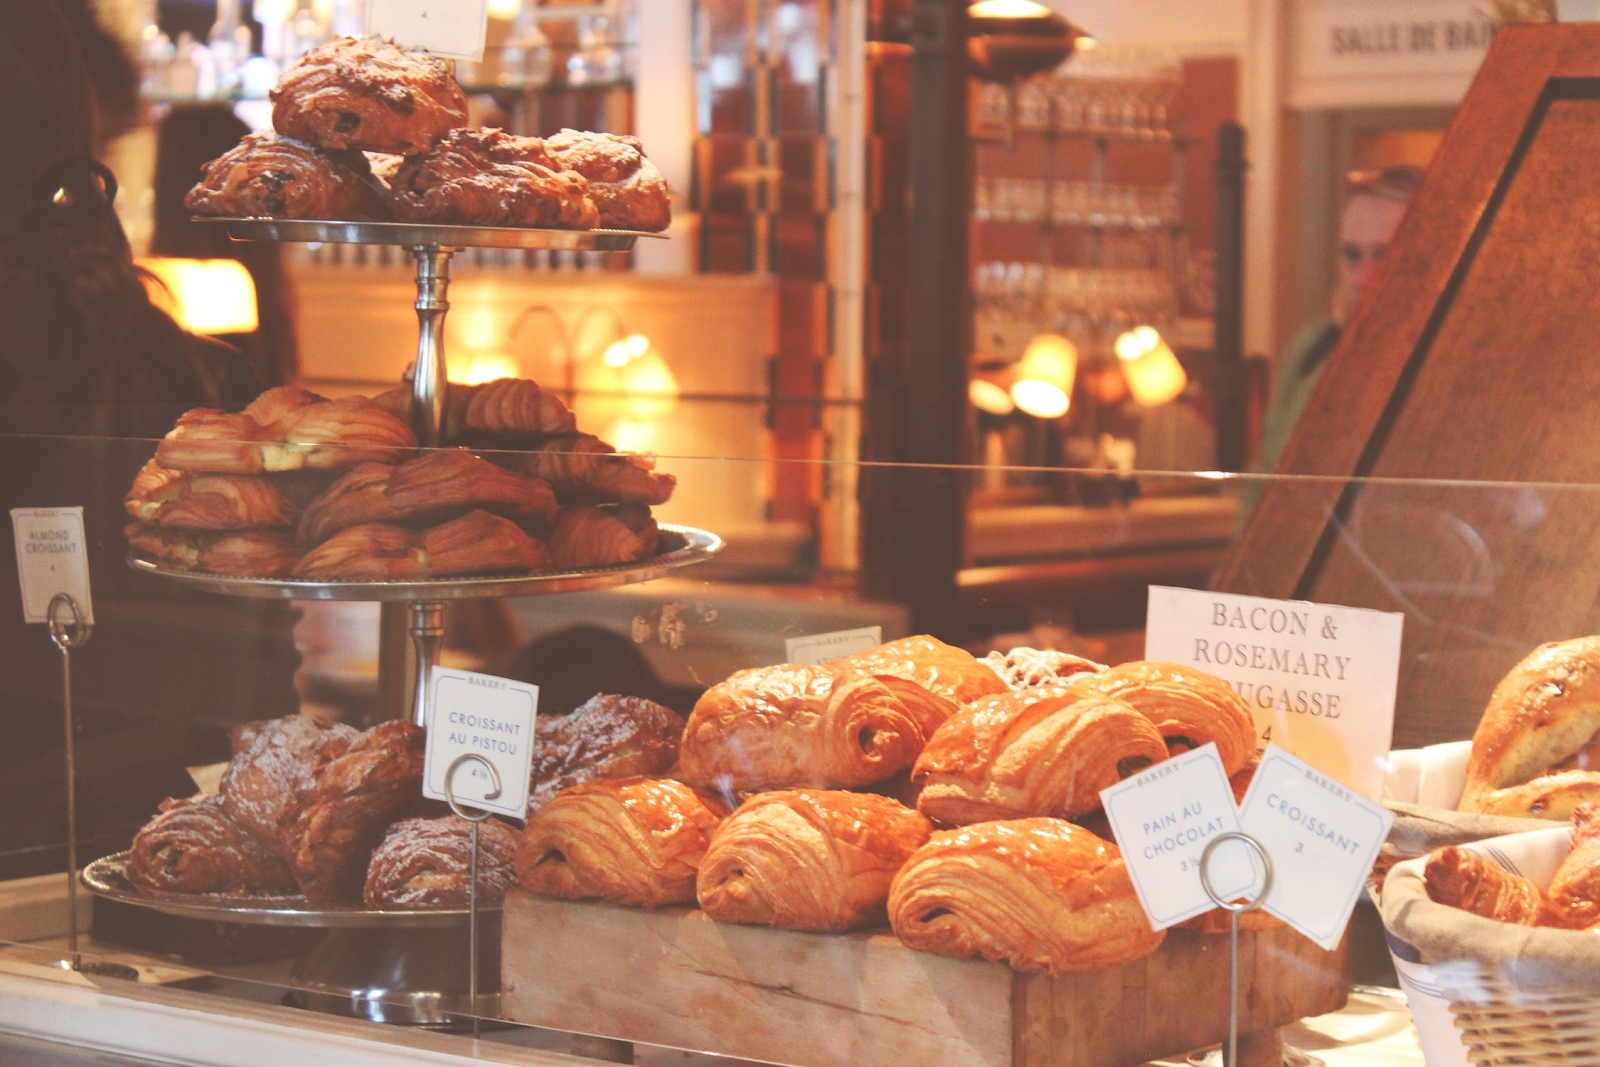 An image of delicious bakery products.